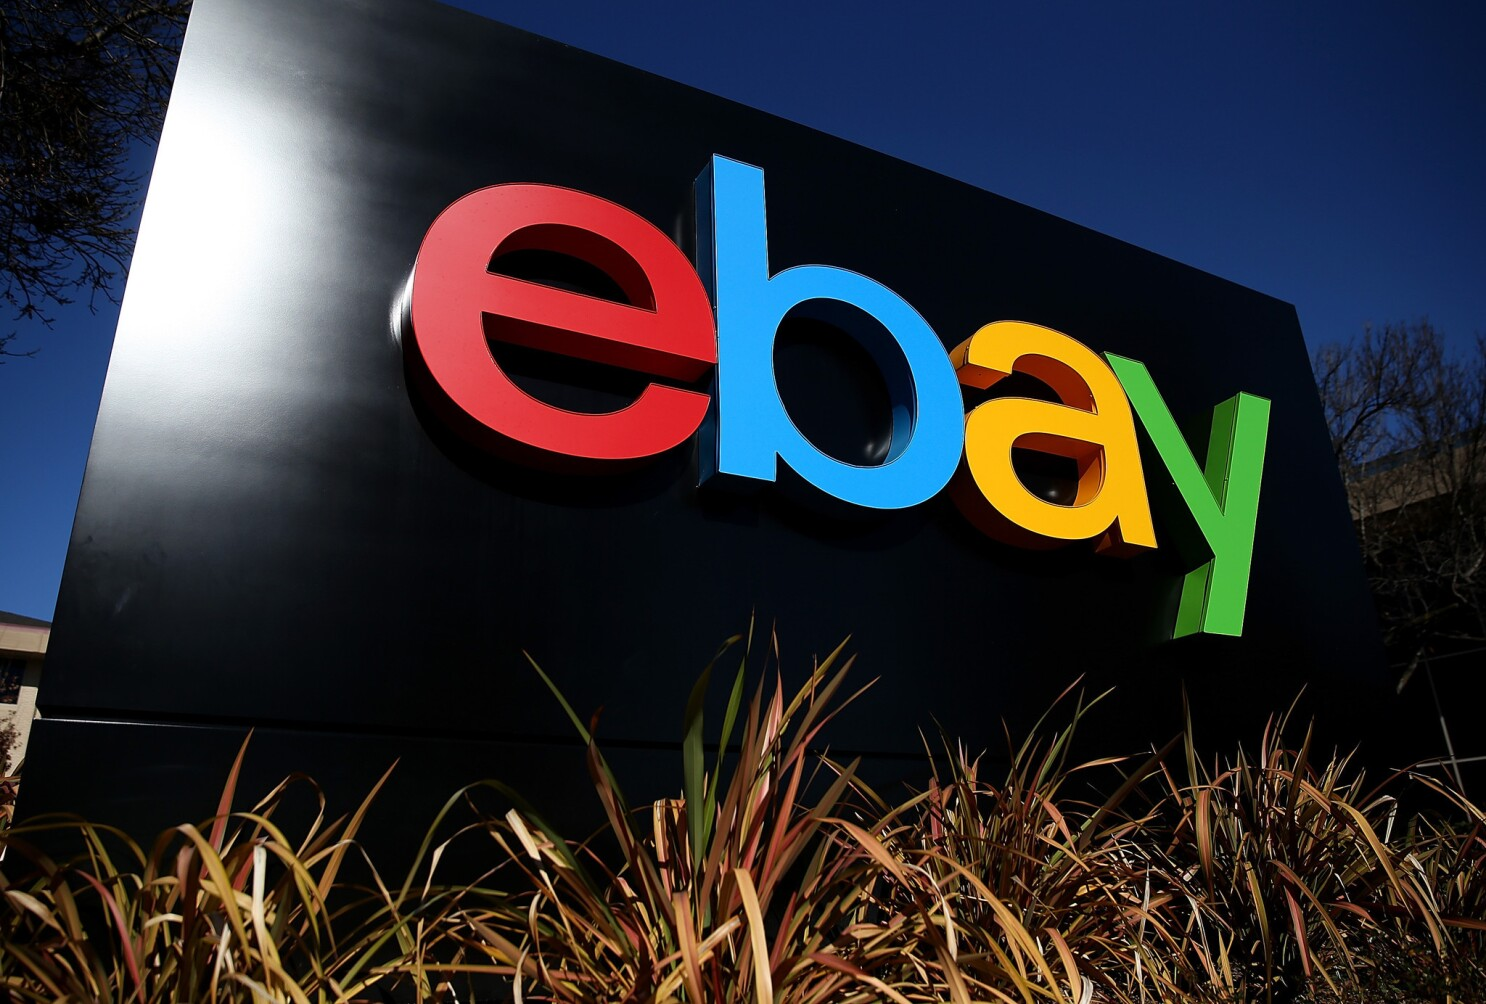 Ebay Stock Rises As Company Considers Sale Of Stubhub Los Angeles Times